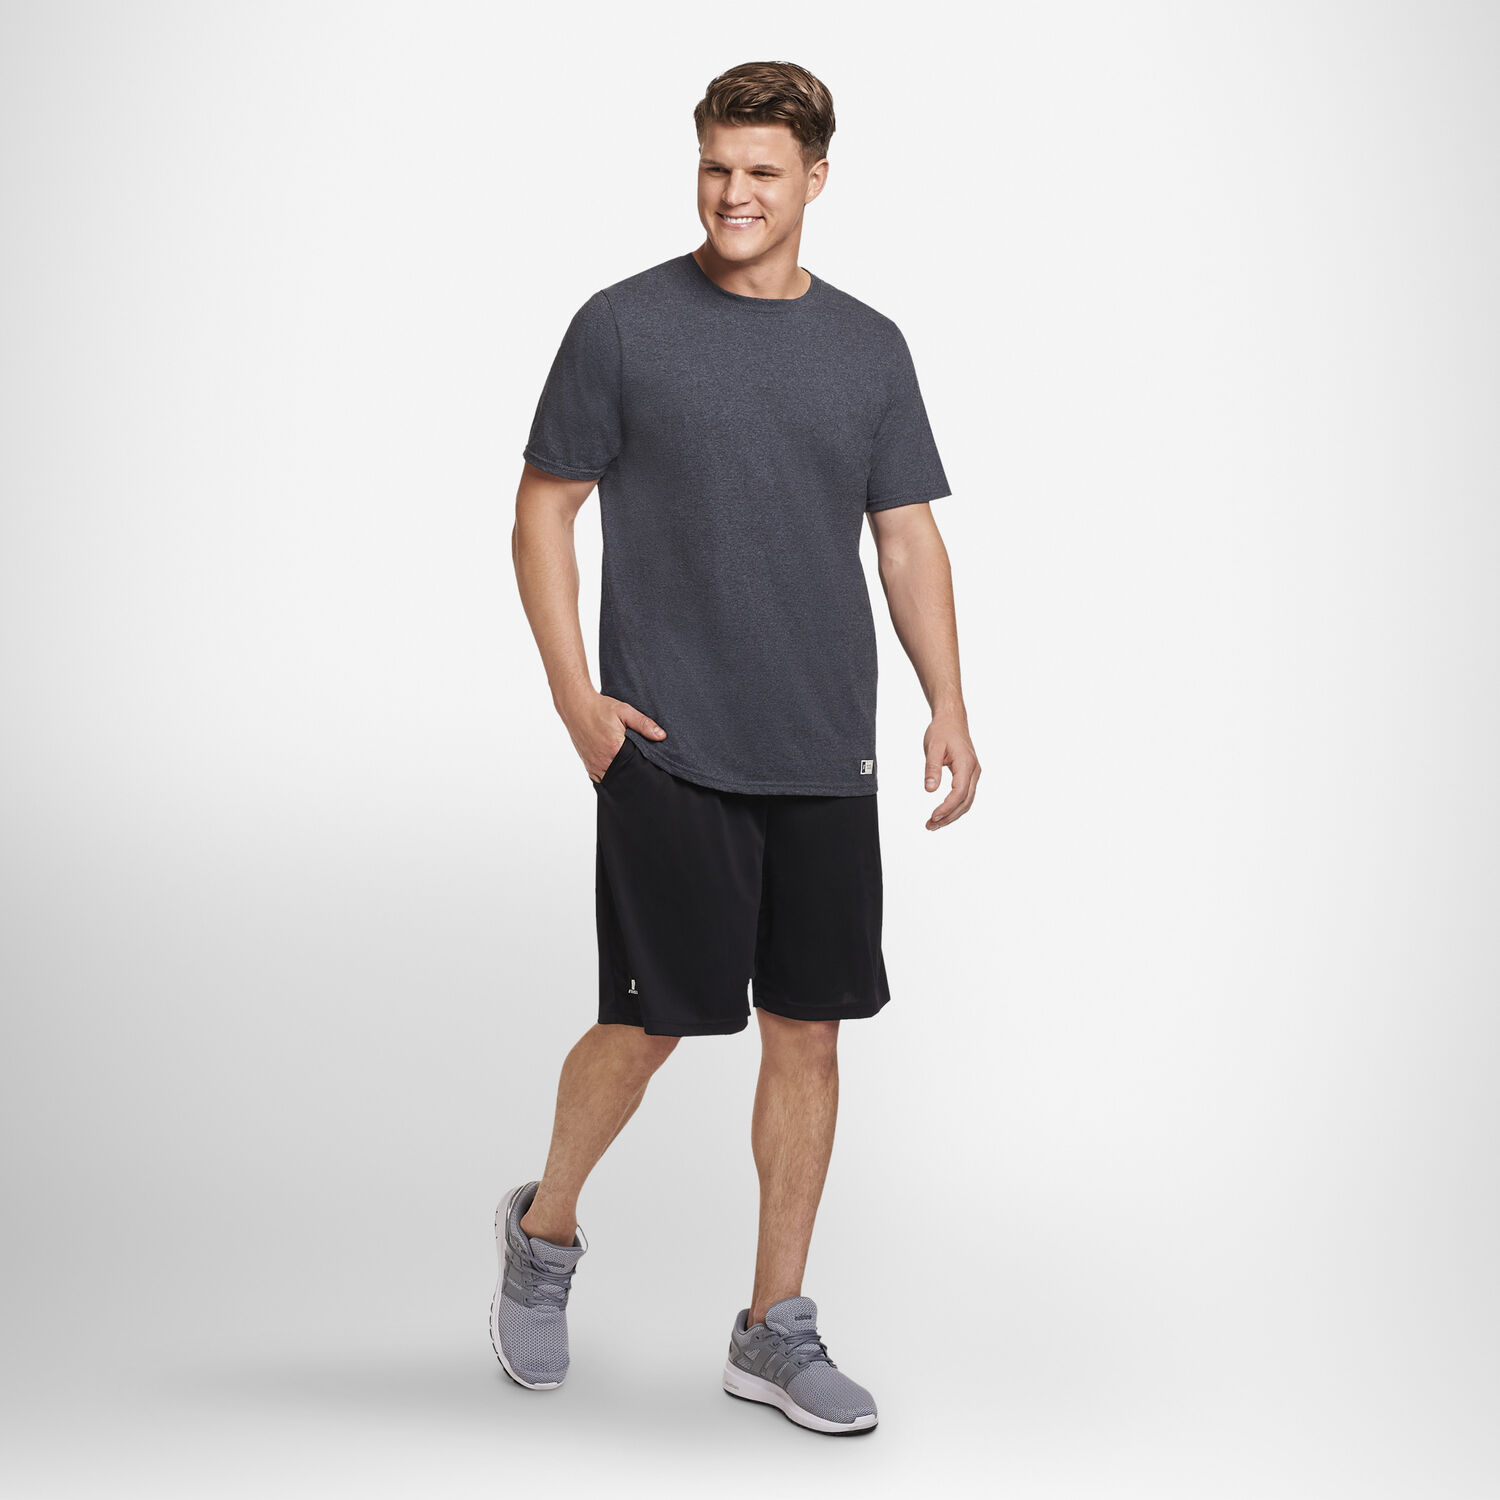 51a6680c27f7 Men's Cotton Performance Tee - Russell US | Russell Athletic